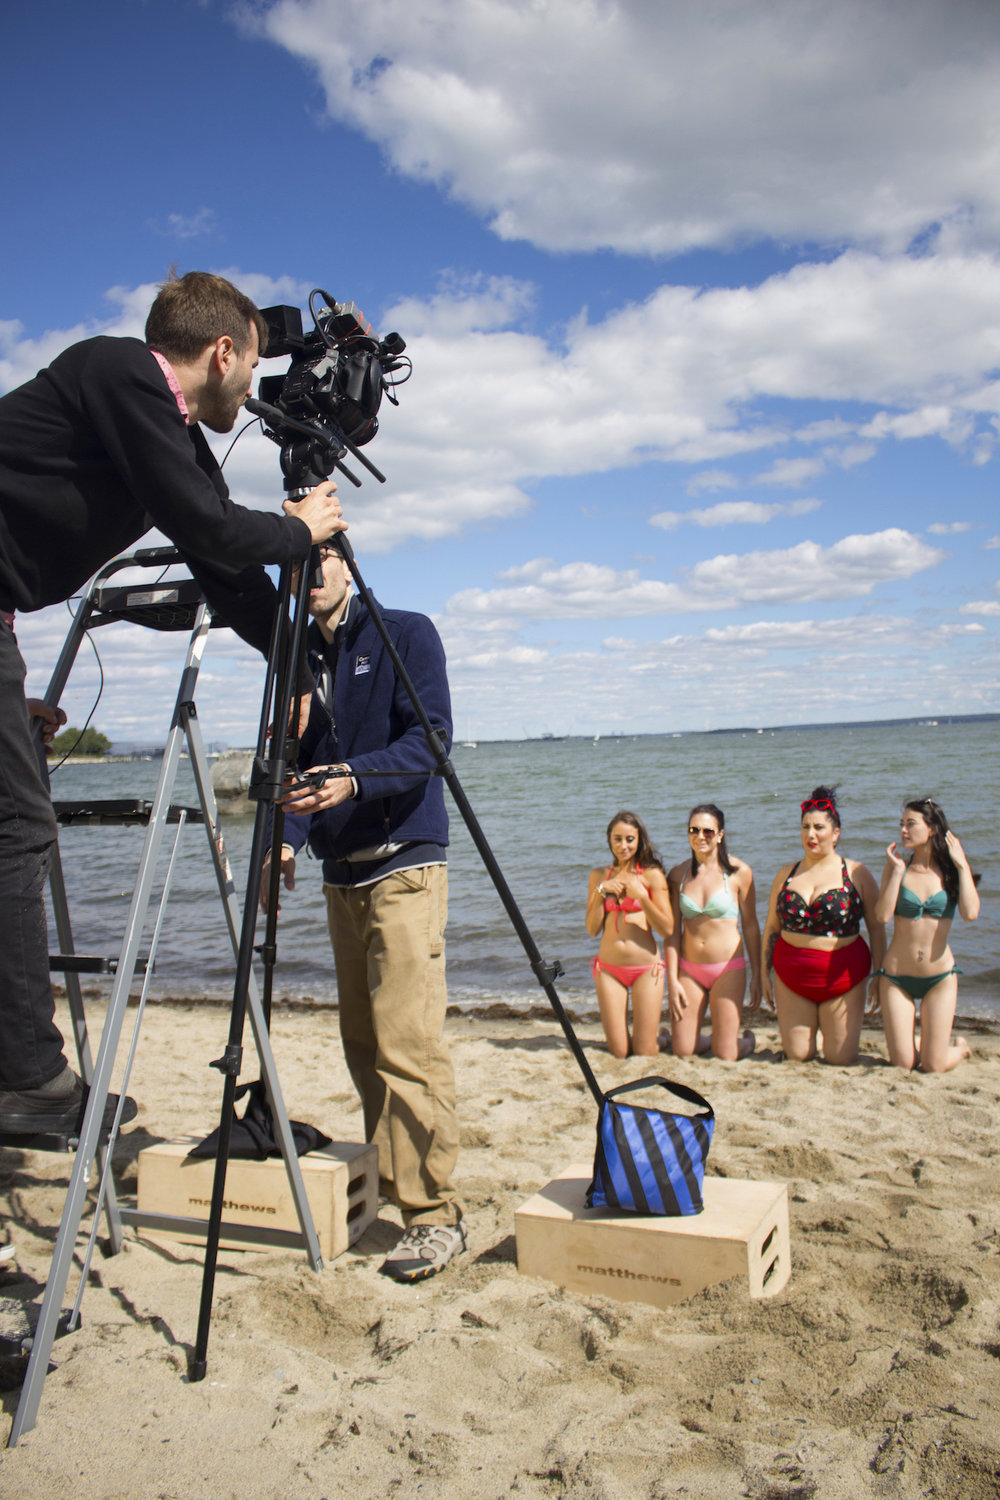 Director of Photography Denez McAdoo sets up the shot, with Assistant Director Adrian Atwood and Actors Acei Martin, Catalina Snape, Alessandra Grima and Maya Simone on the set of Geena Matuson's (@geenamatuson) production of 'Fauxmercials' beach ads, September 2016.